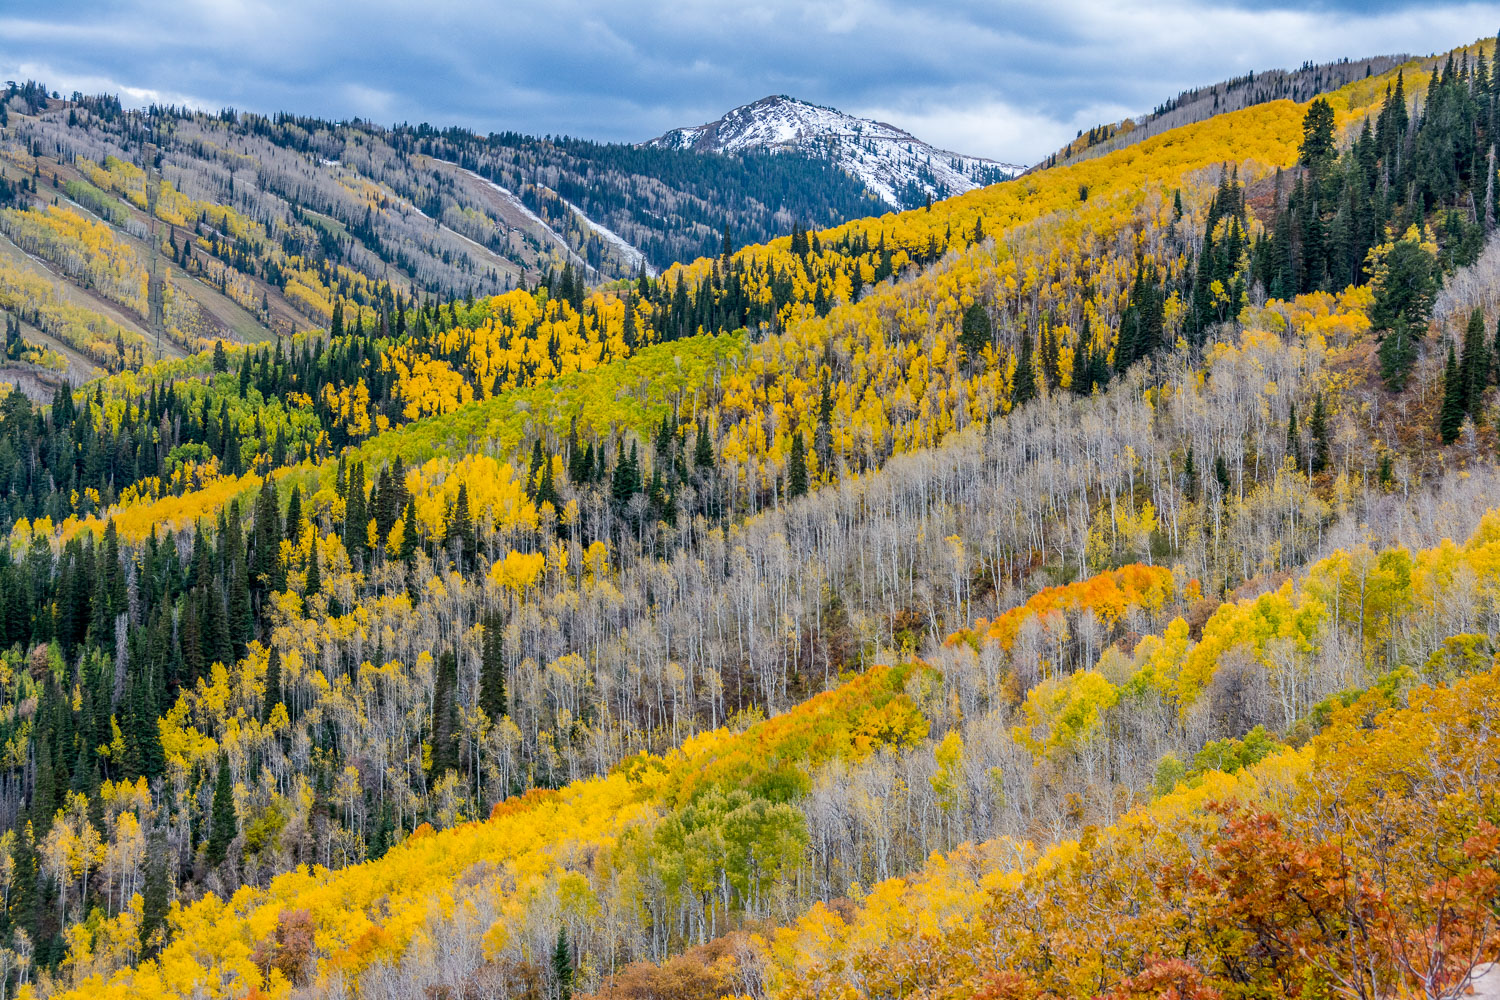 Peak Fall Foliage from Iron Canyon, Park City, Wasatch Mountains